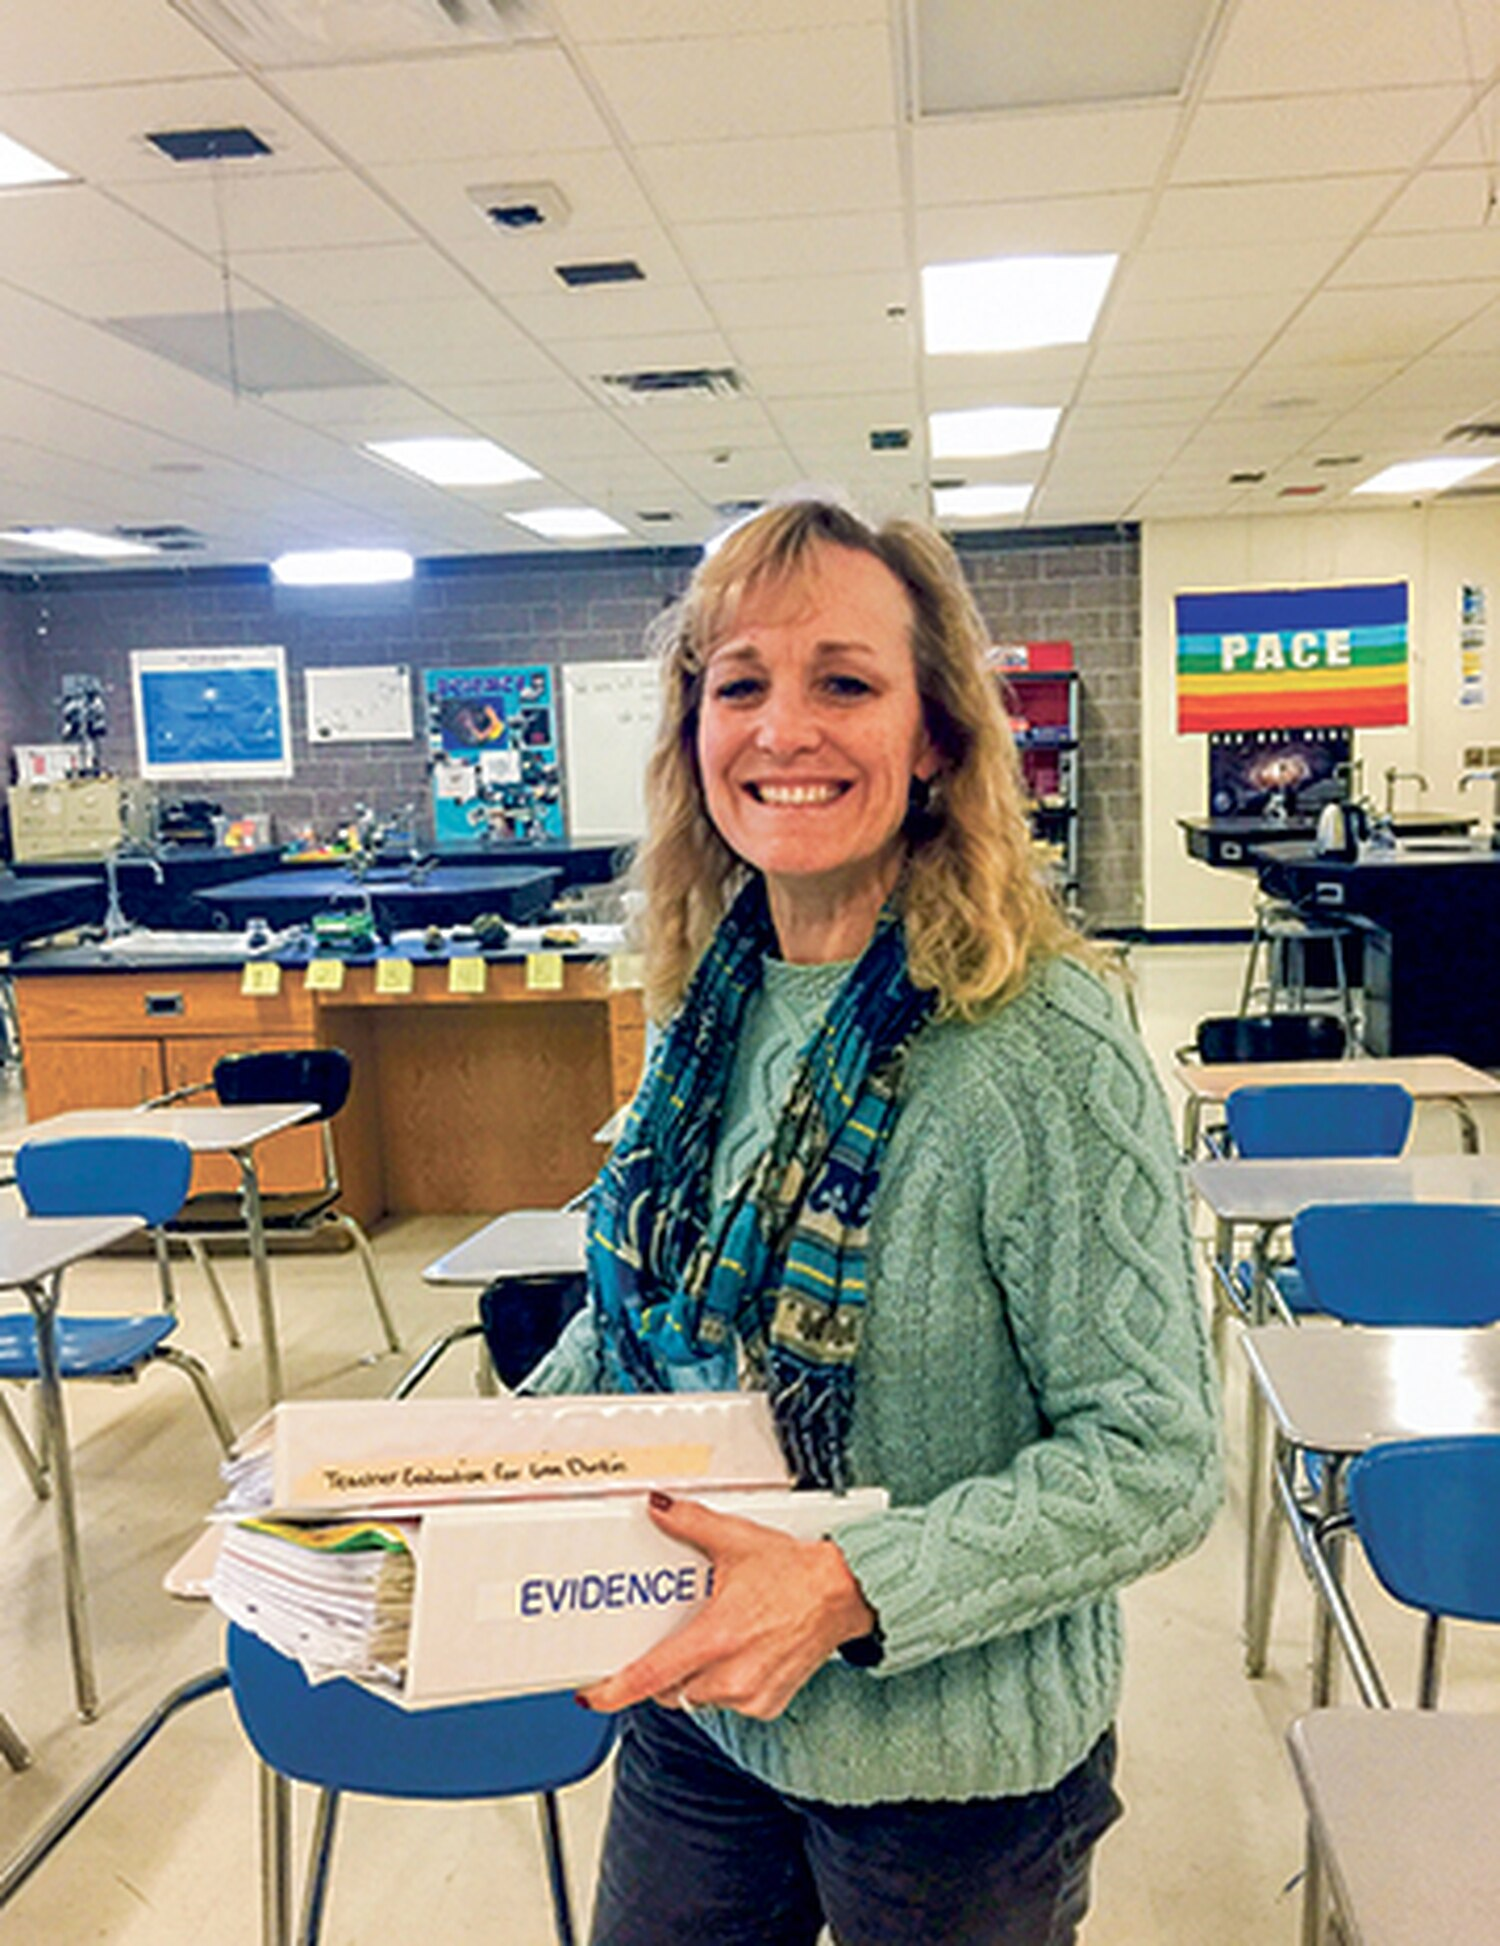 Lisa Durkin shows off the documents she compiled for her recent teacher evaluation—710 pages of them.